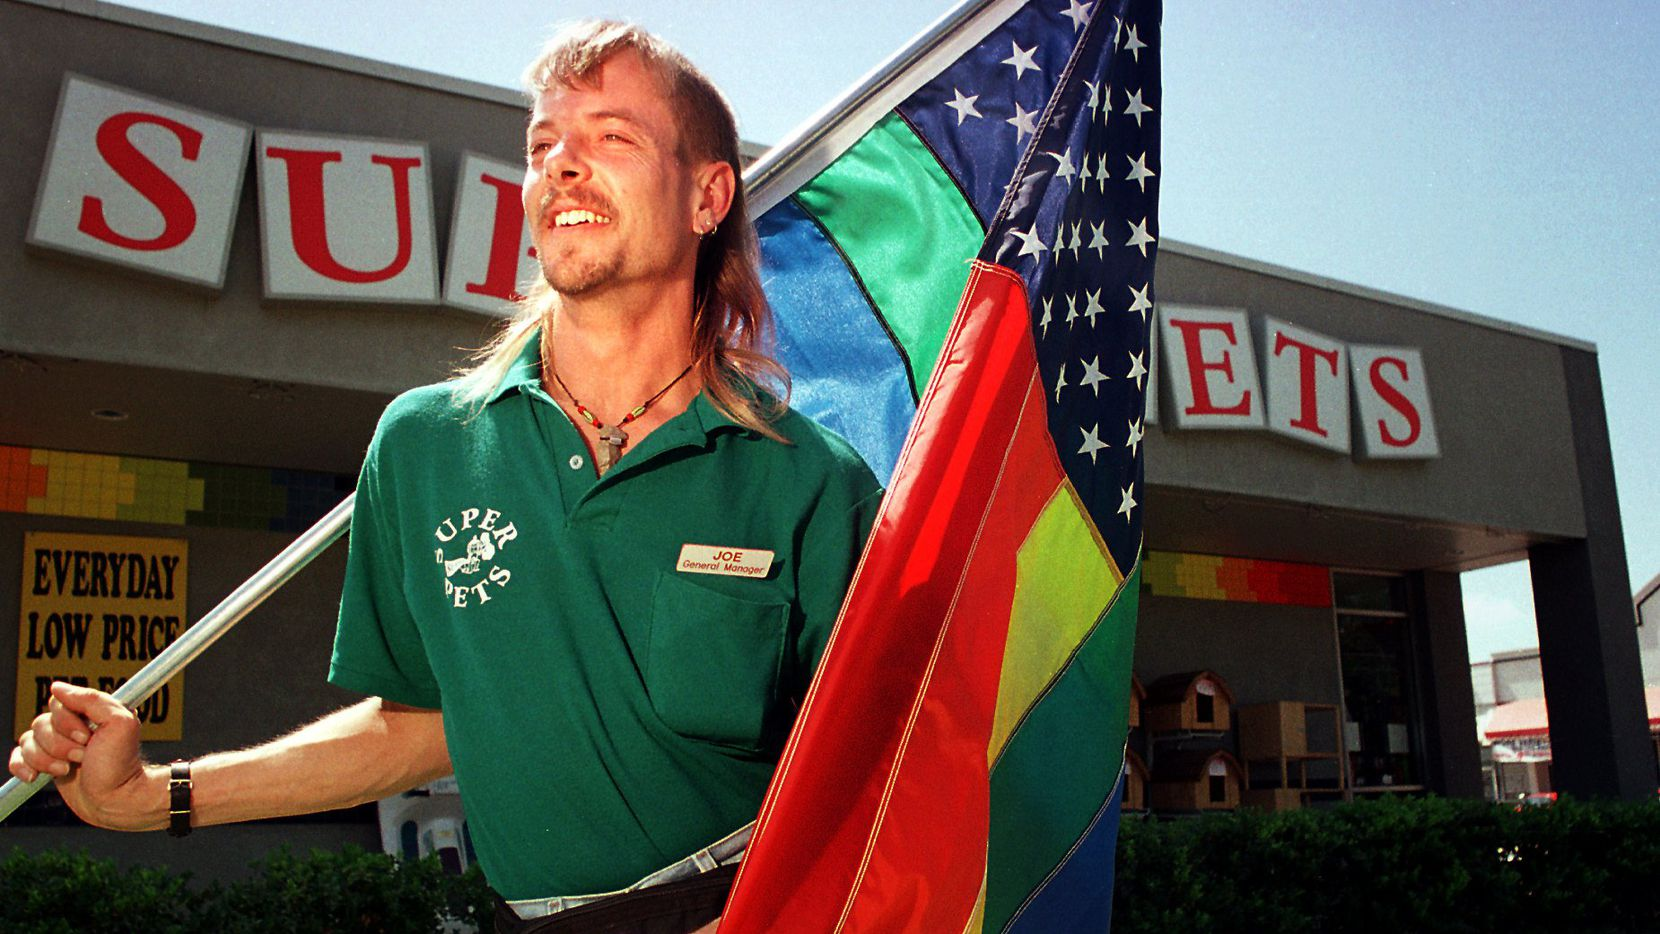 Joe Maldonado-Passage — then known as Joe Schreibvogel — said city officials in Arlington were targeting him because of his sexuality when they told him the flags outside his pet store weren't allowed in 1997.